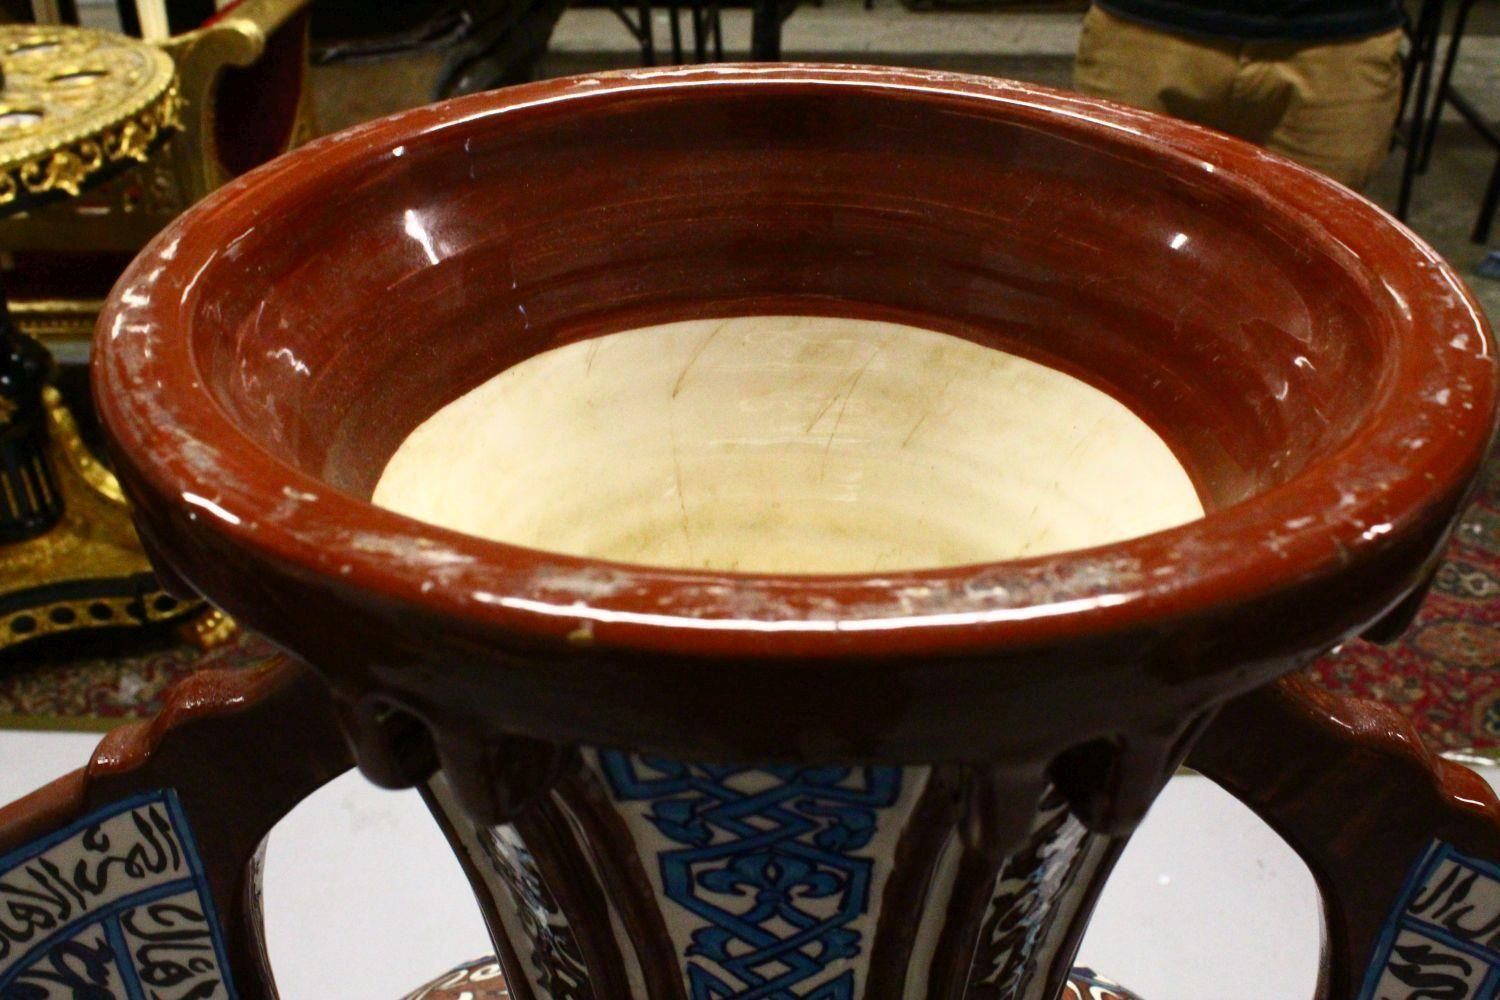 A HUGE 19TH CENTURY ISLAMIC HISPANO MORESQUE POTTERY ALHAMBRA STYLE POTTERY VASE & STAND, possibly - Image 9 of 10